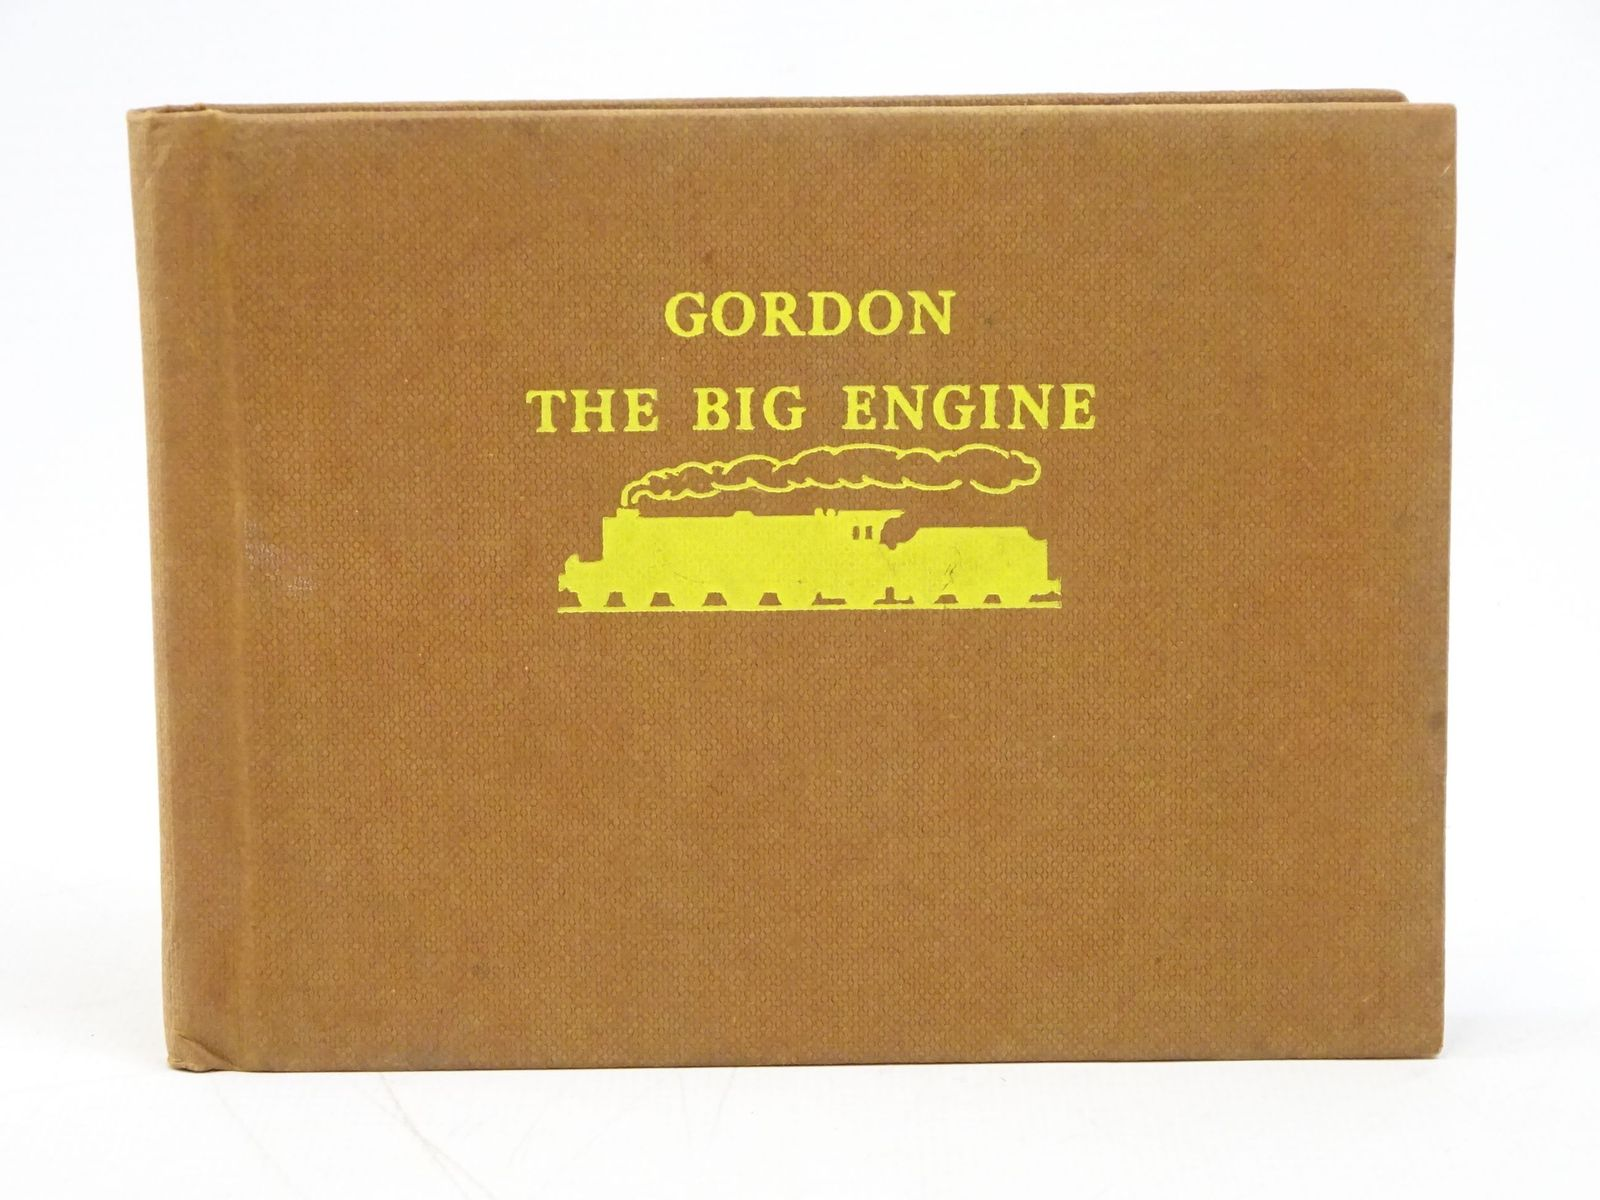 Photo of GORDON THE BIG ENGINE written by Awdry, Rev. W. illustrated by Dalby, C. Reginald published by Edmund Ward Ltd. (STOCK CODE: 1318023)  for sale by Stella & Rose's Books